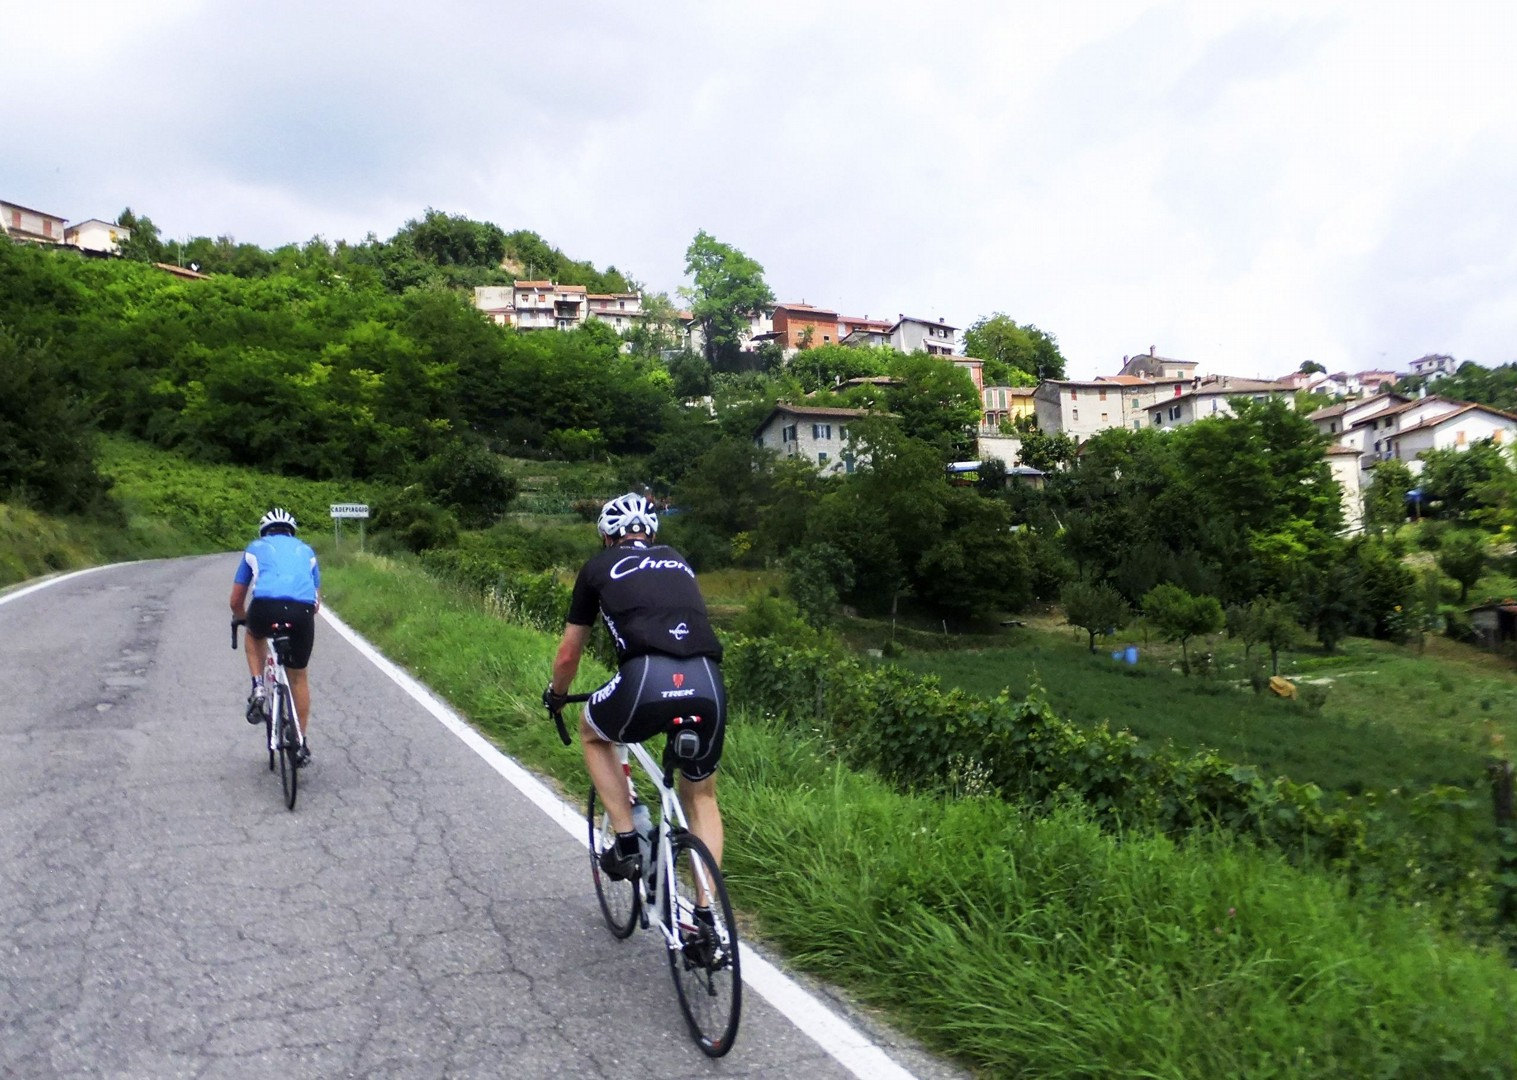 barolo-barbaresco-asti-wines-road-cycling-holiday-italy-piemonte.jpg - Italy - Piemonte - La Strada del Vino - Guided Road Cycling Holiday - Road Cycling